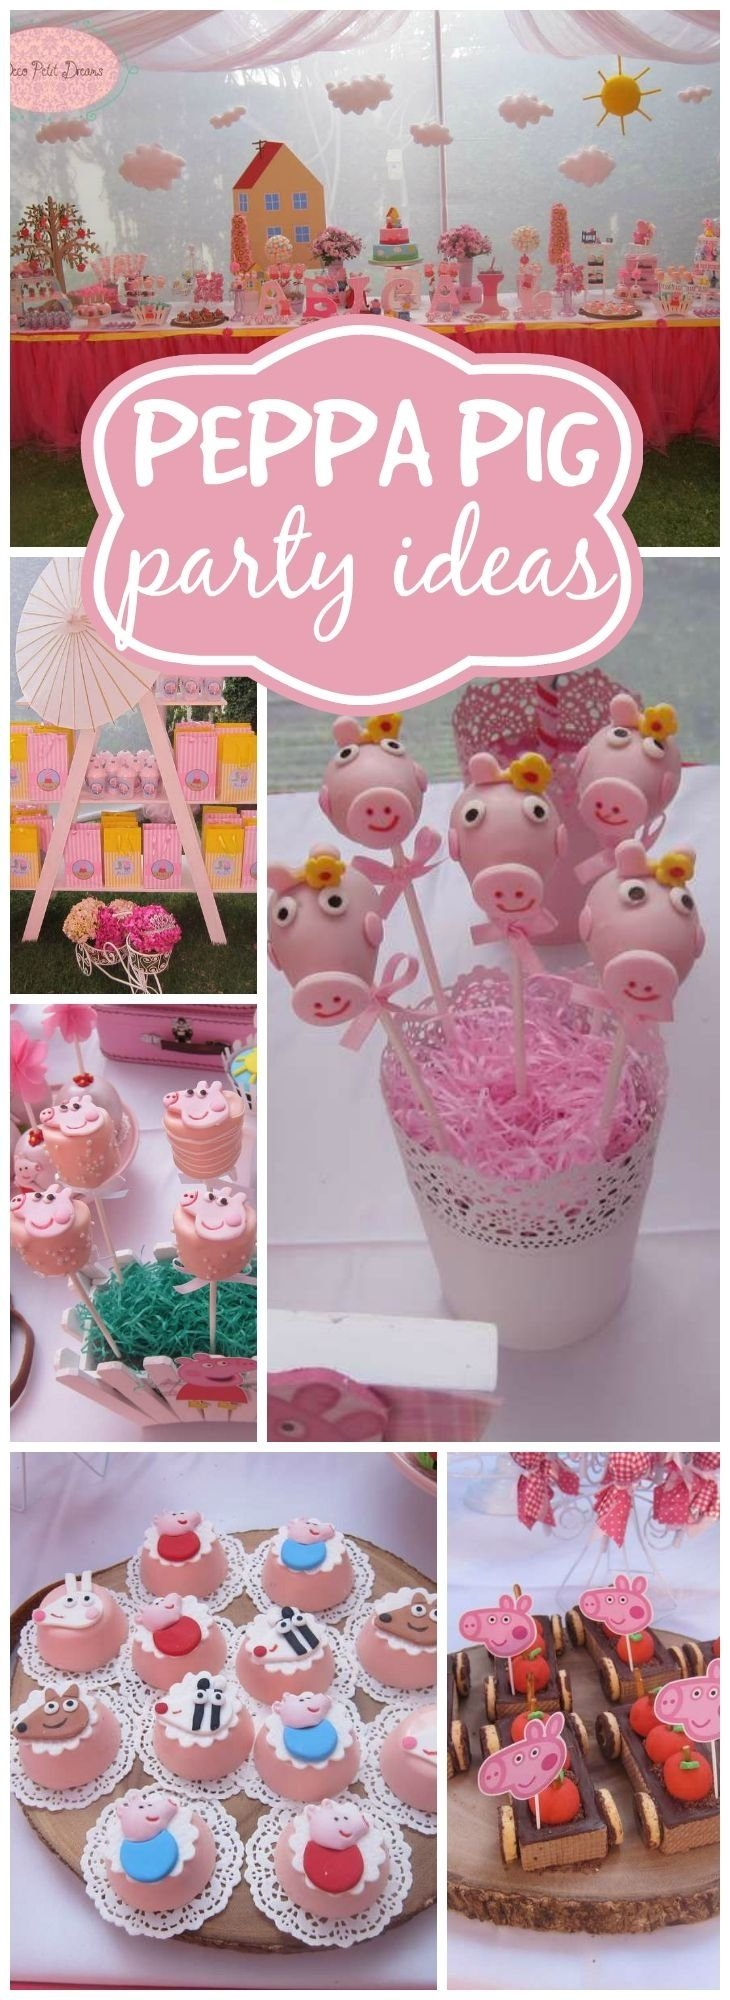 10 Lovable 4Th Birthday Party Ideas Girl 293 best peppa pig party ideas images on pinterest anniversary 1